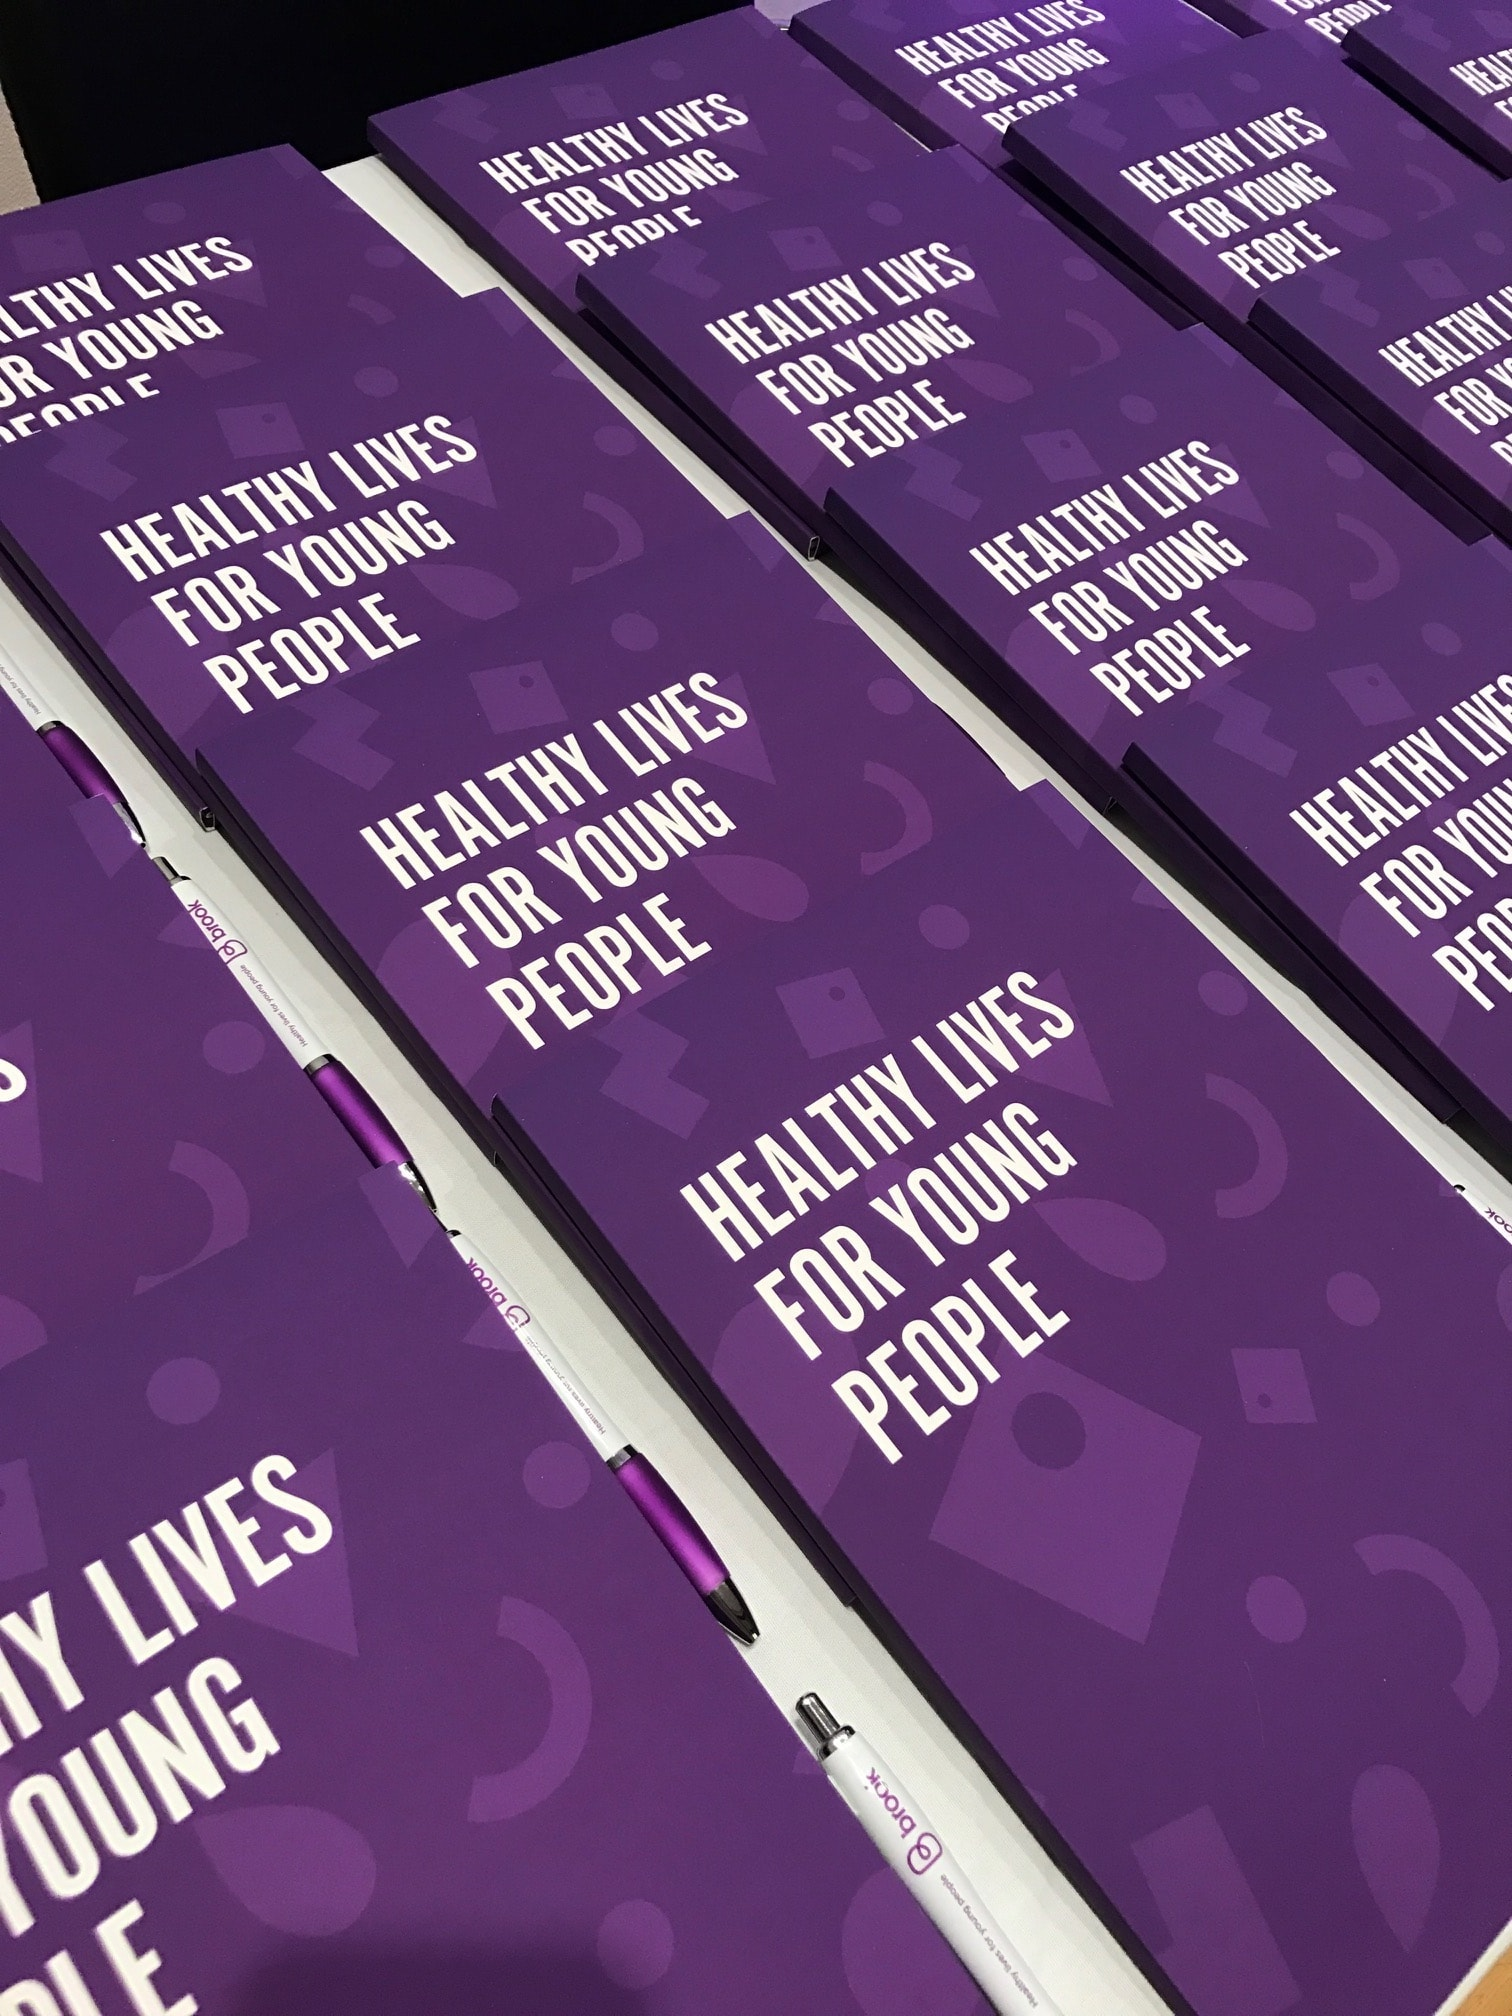 Brook folders with Healthy Lives for Young People tagline